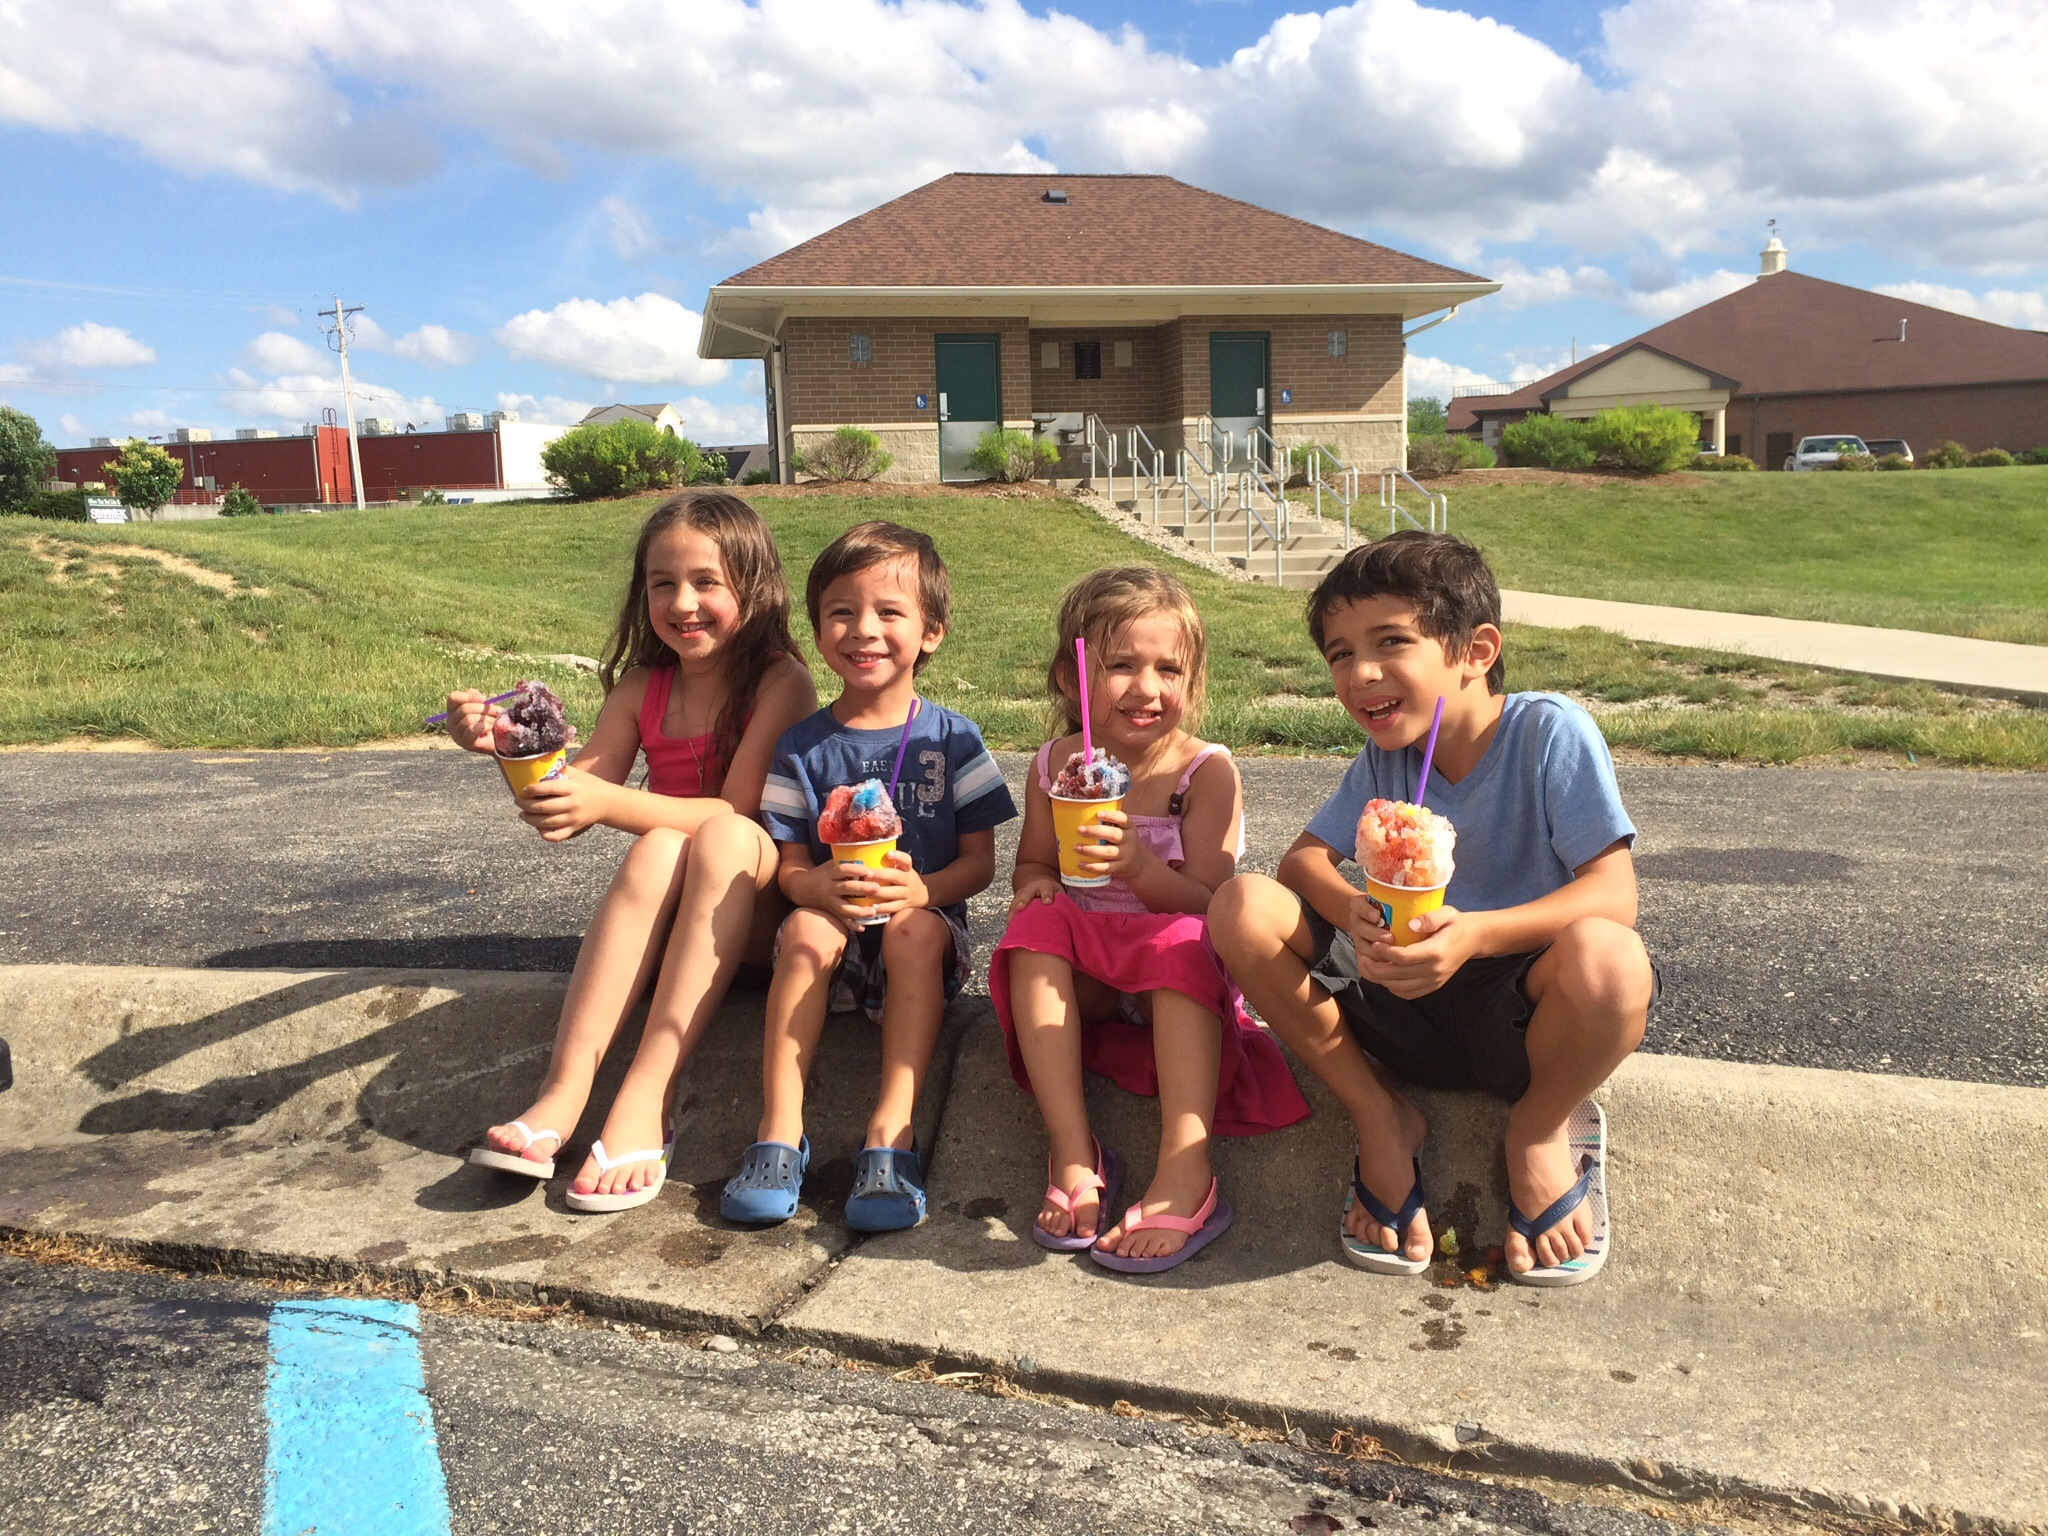 Taylor, Noah, Jordy and Koa eating shaved ice after playing in the park